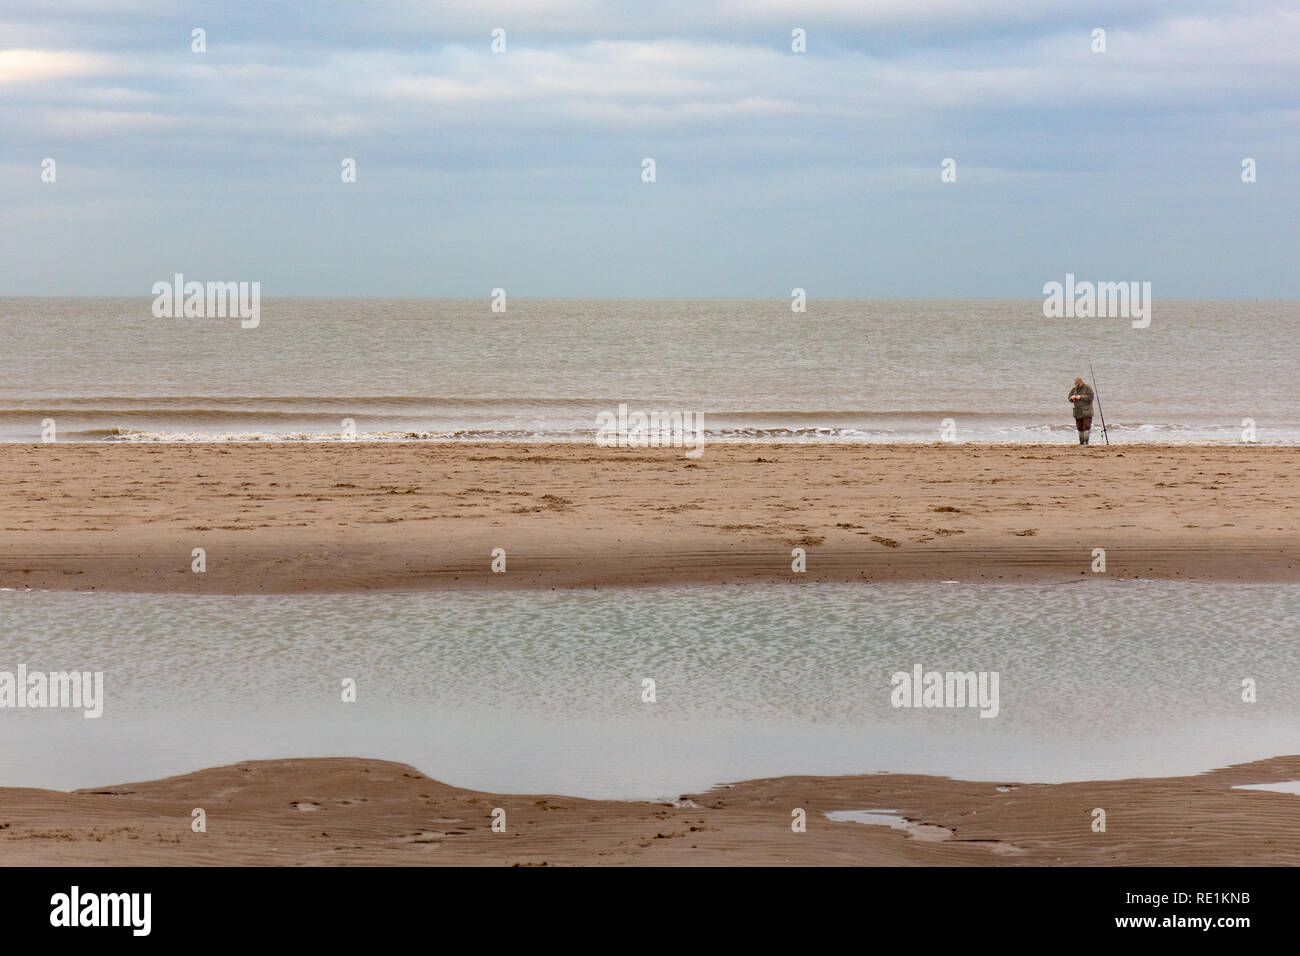 Beach at the Northsea, Netherlands - Stock Image